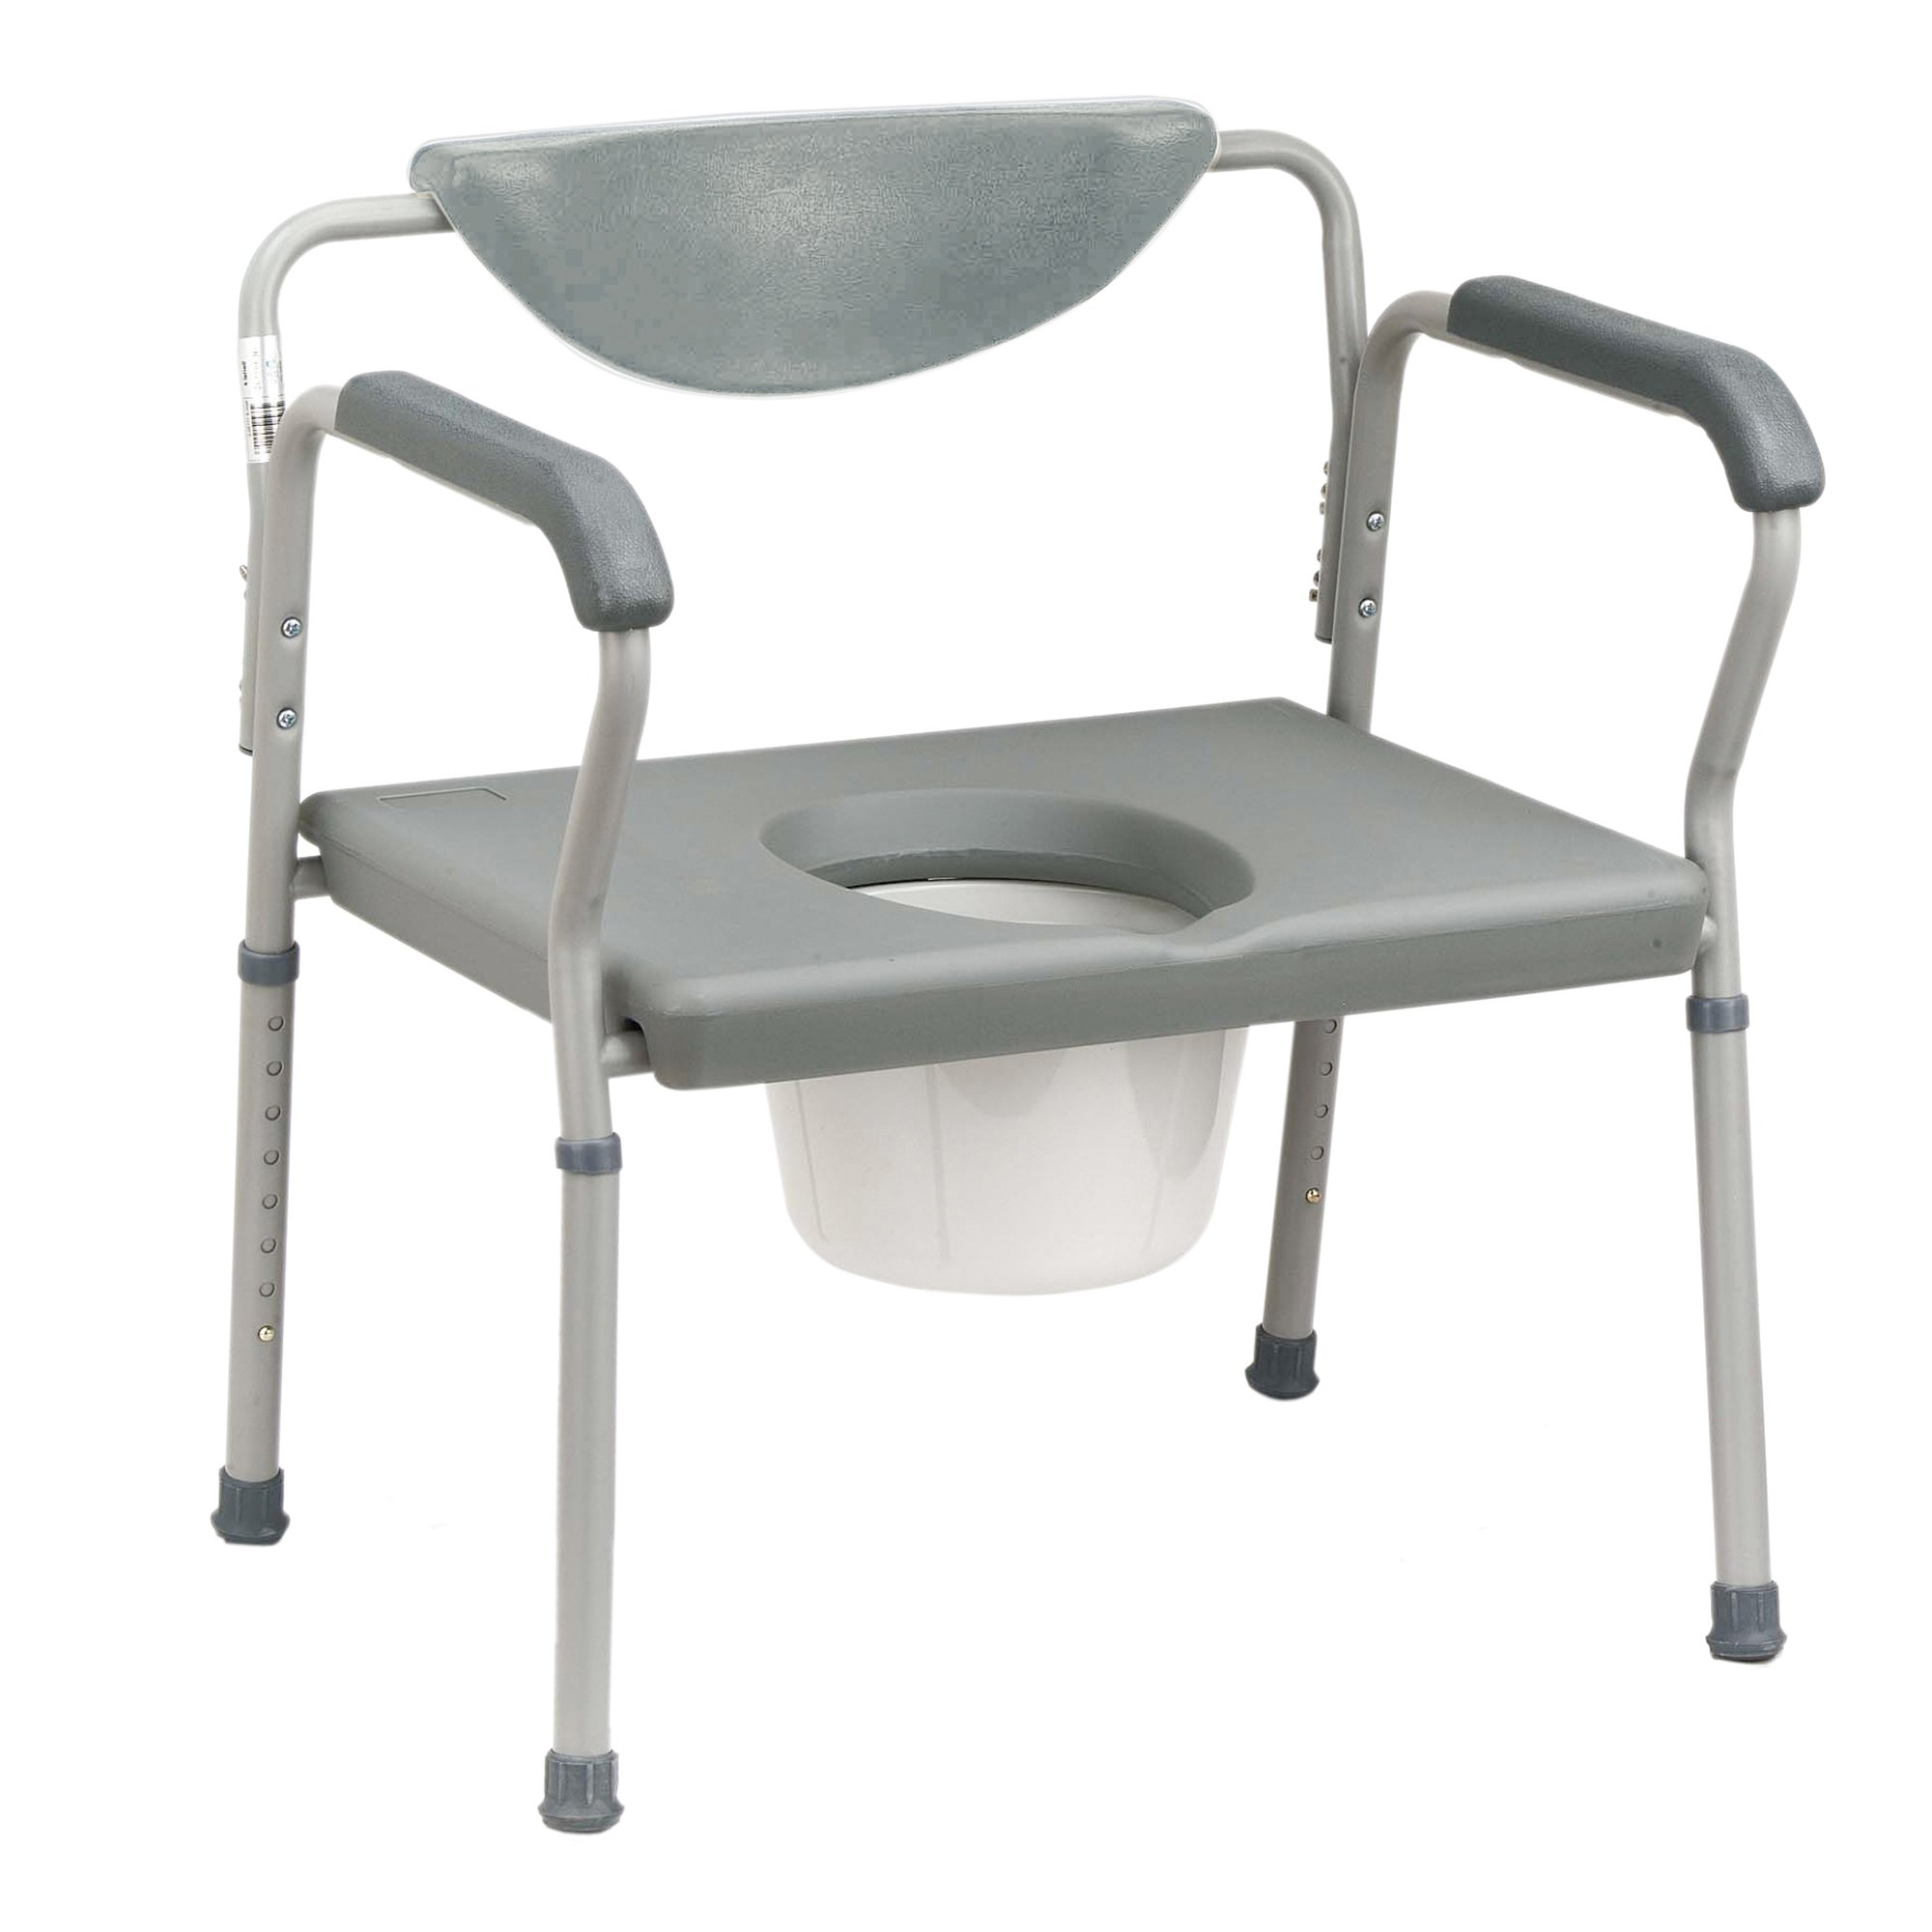 drive Bariatric Commode Chair Fixed Arm Steel Padded Back Up